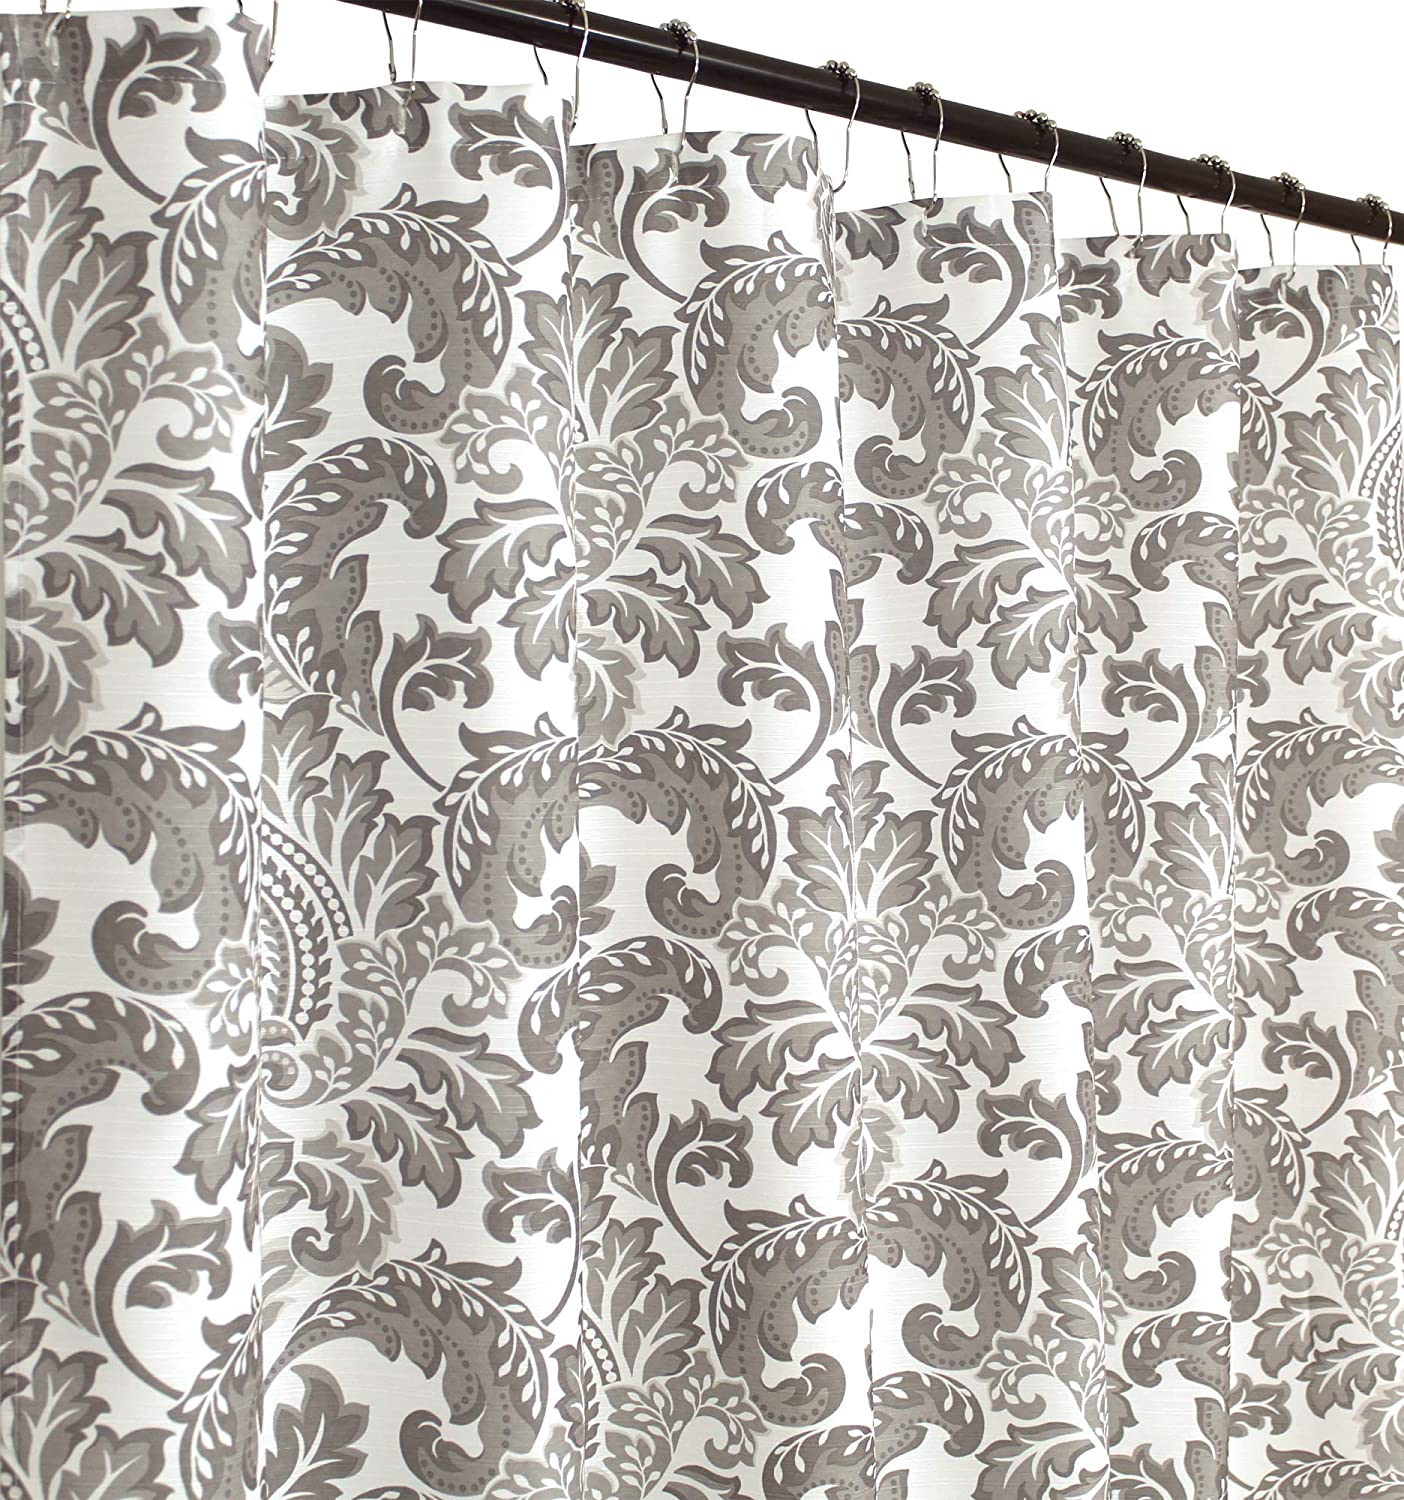 C.H.D Home Damask Fabric Shower Curtain (Zoe)